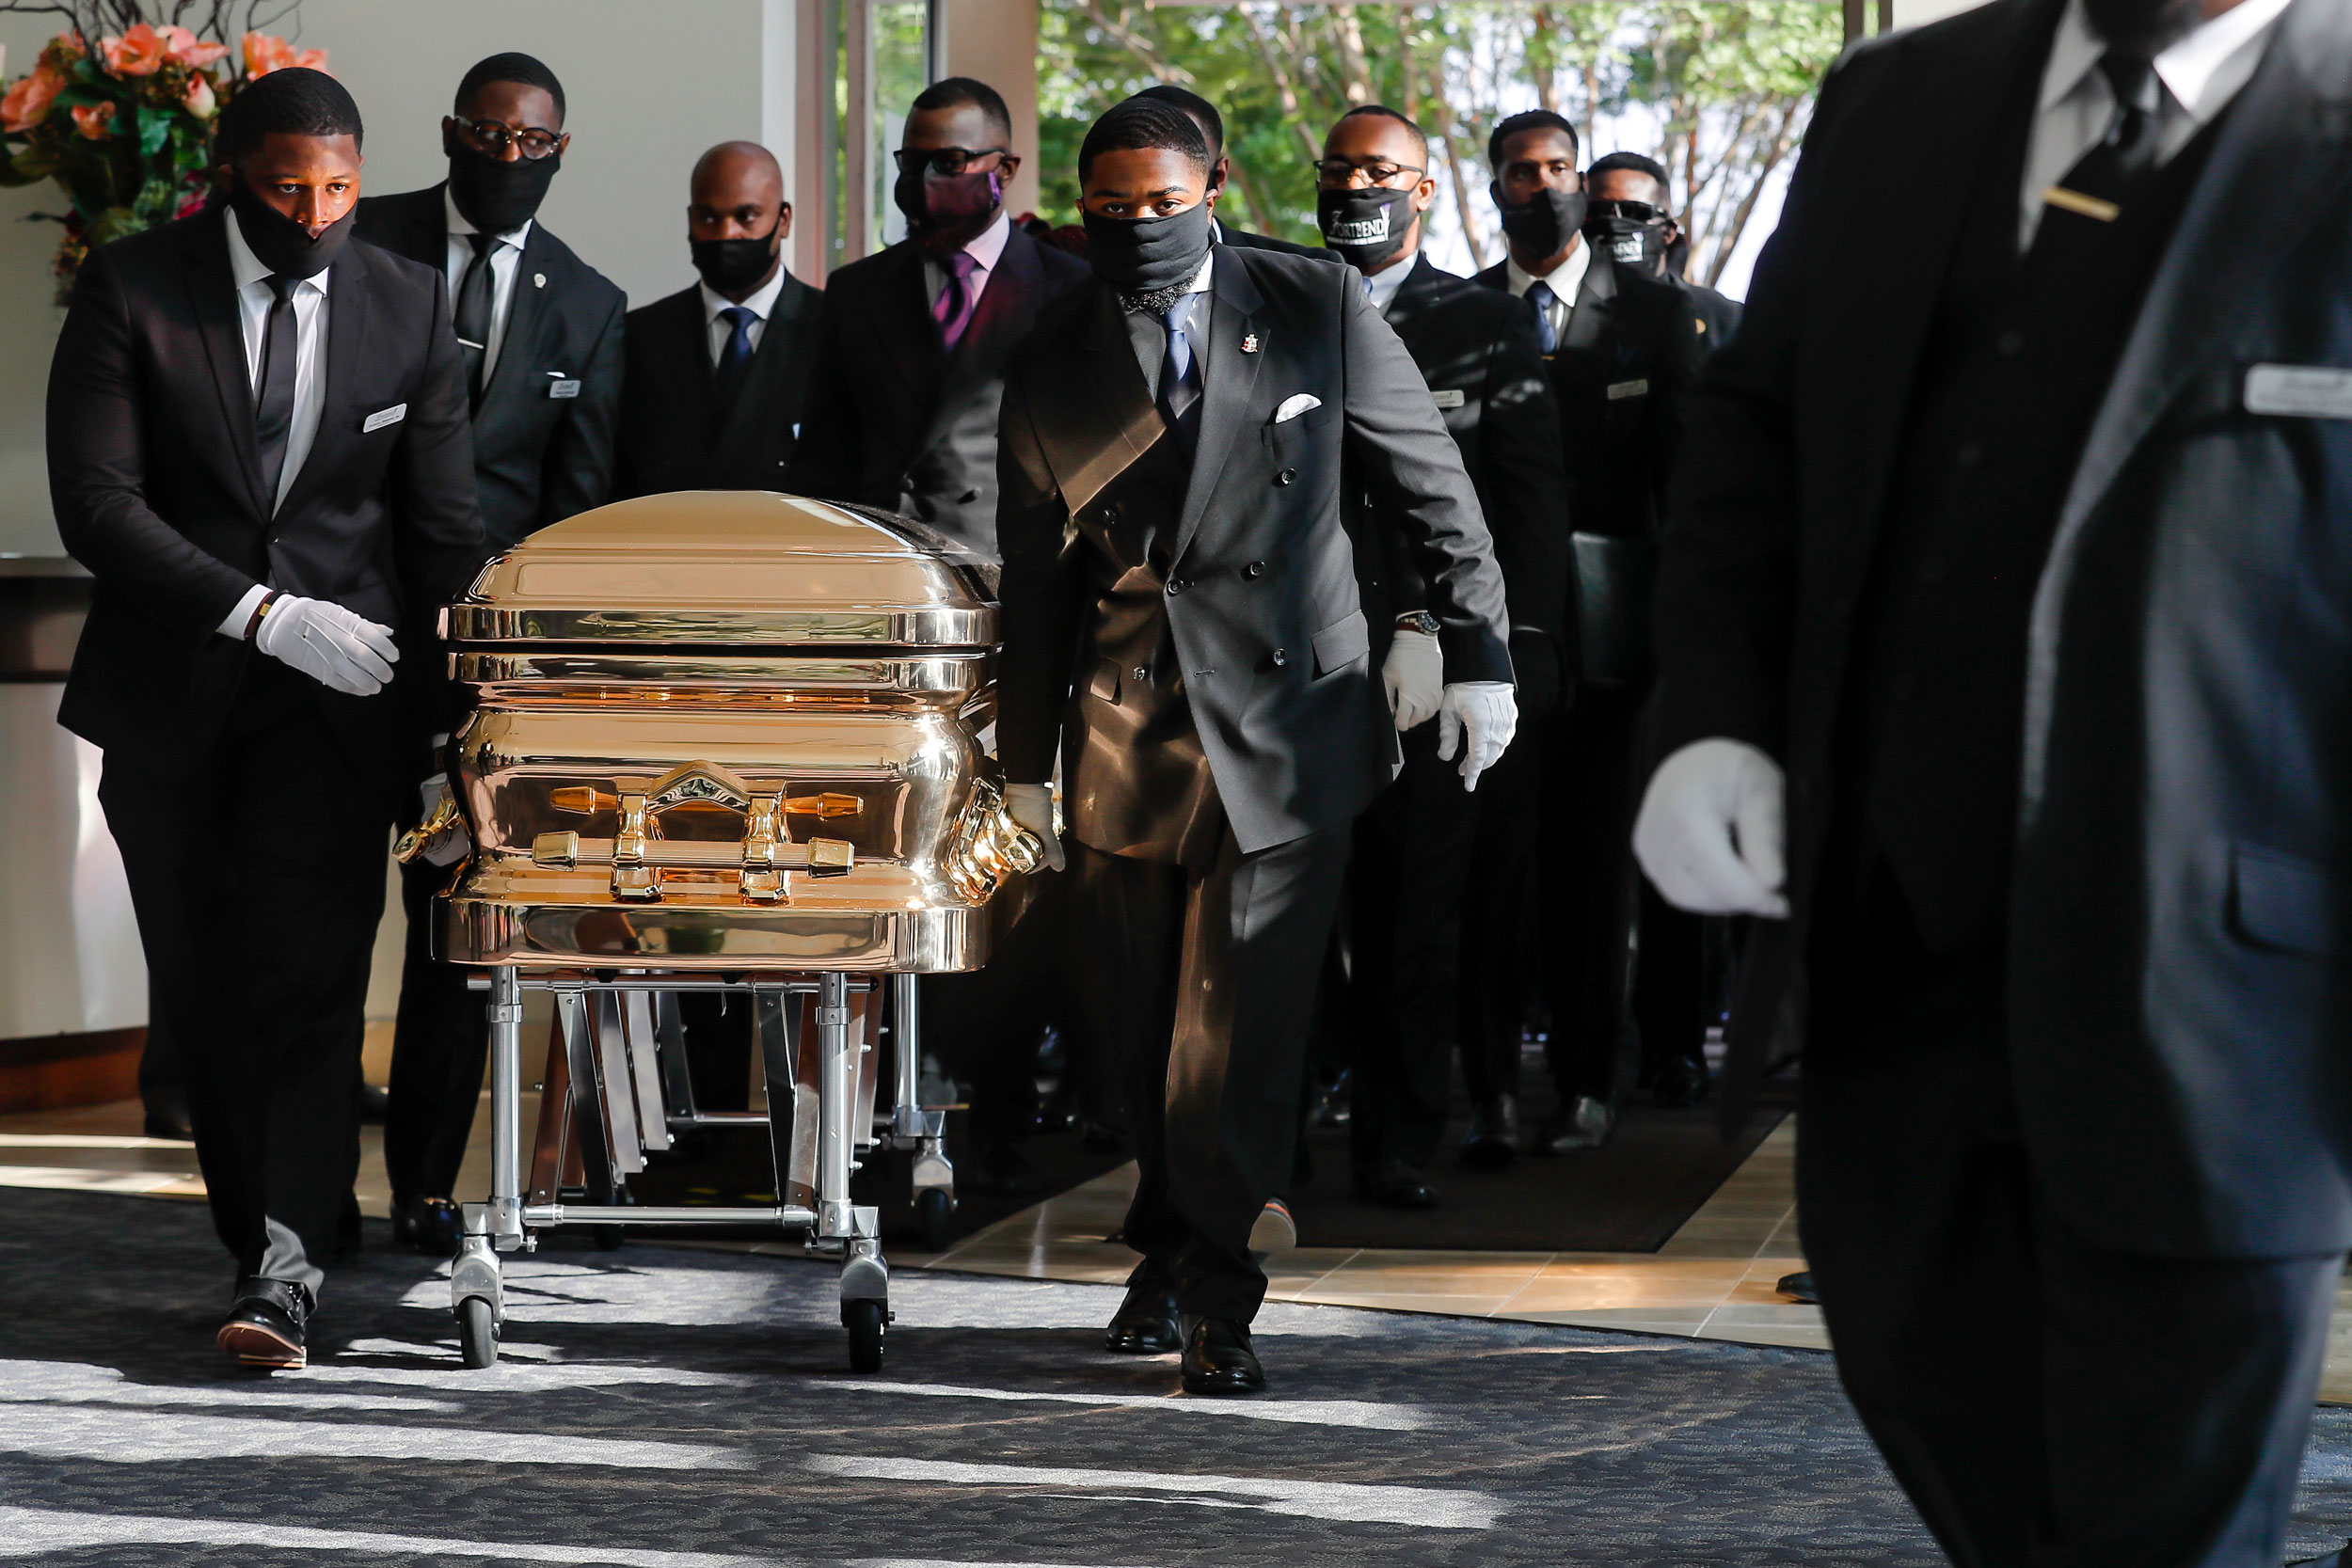 Pallbearers bring the coffin into The Fountain of Praise church in Houston for the funeral for George Floyd on Tuesda June 9, 2020. Floyd died after being restrained by Minneapolis Police officers on May 25.